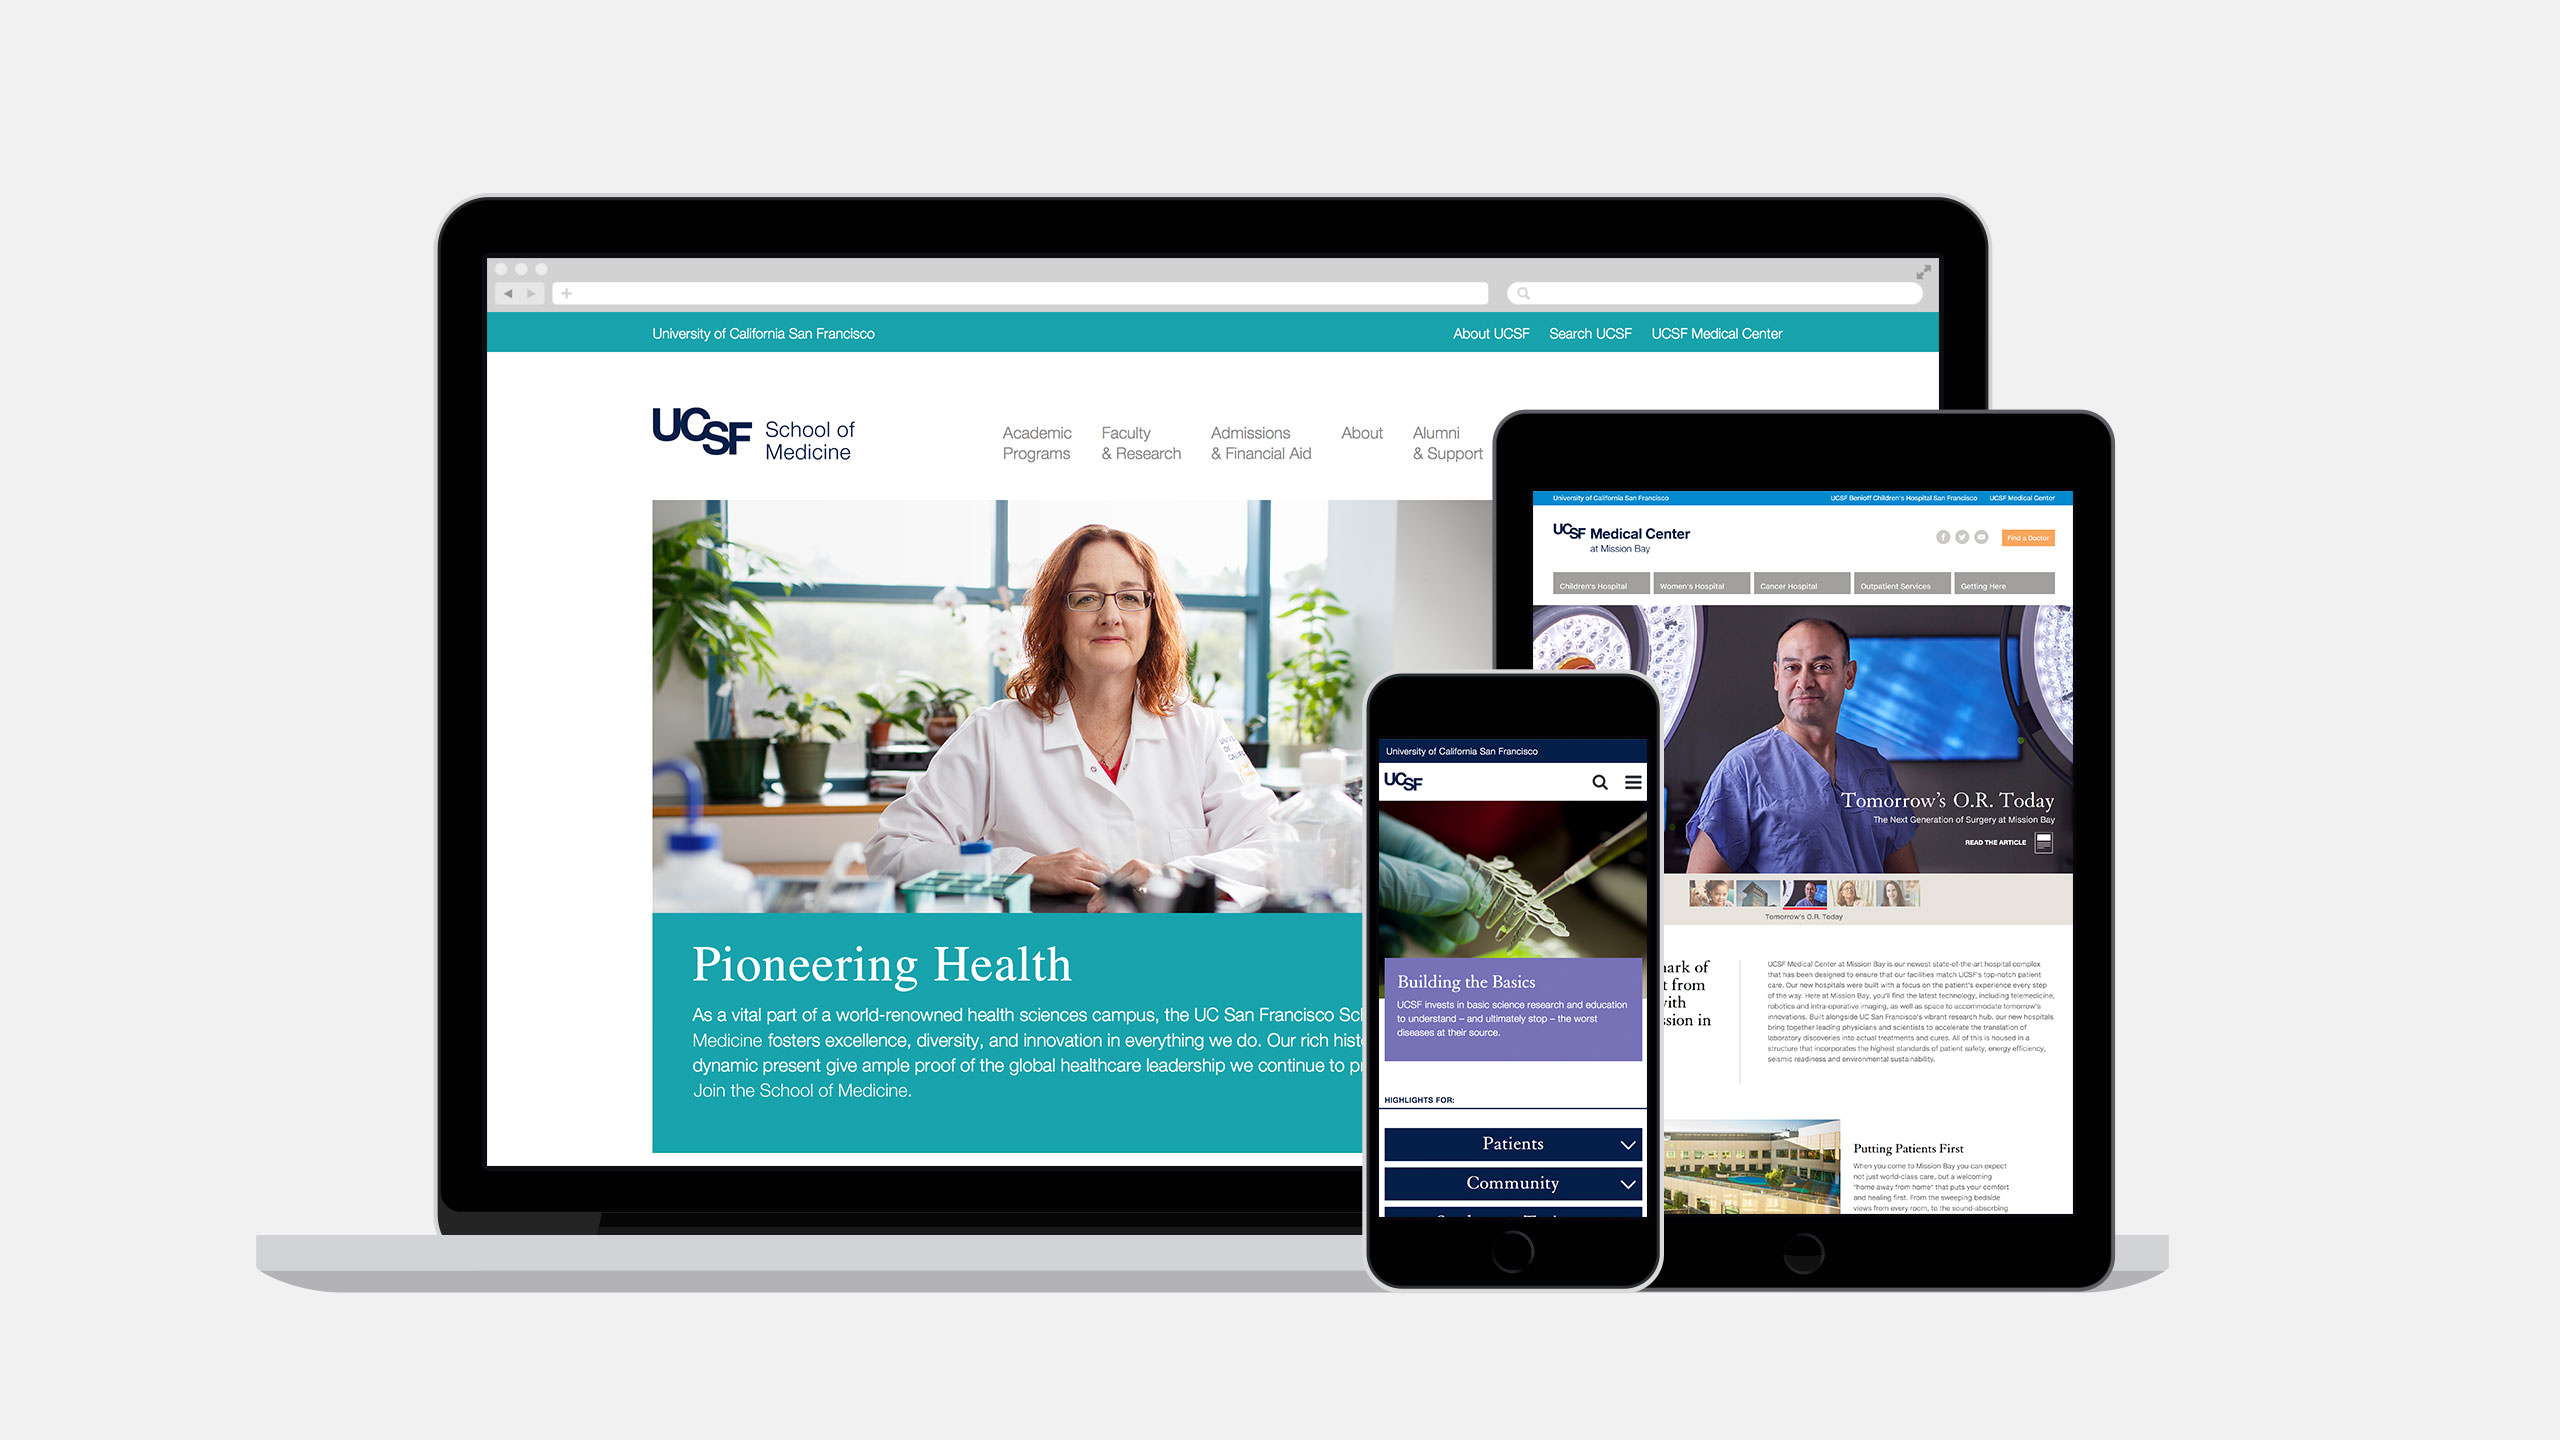 UCSF Brand Websites on Laptop, Tablet and Mobile Phone